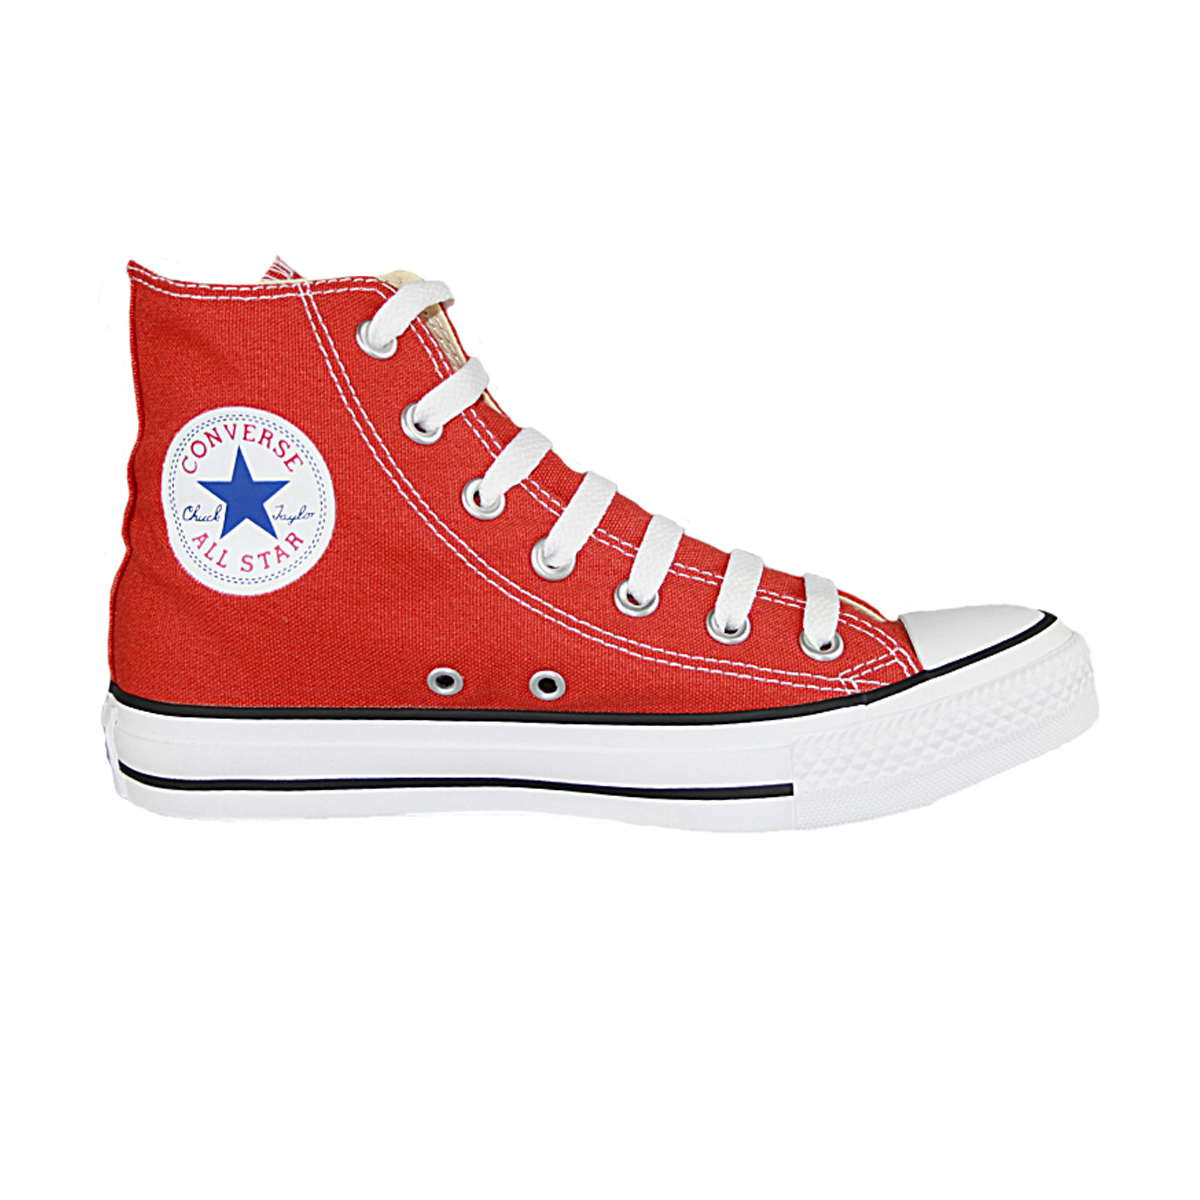 Converse trainers – for all types of sports activities